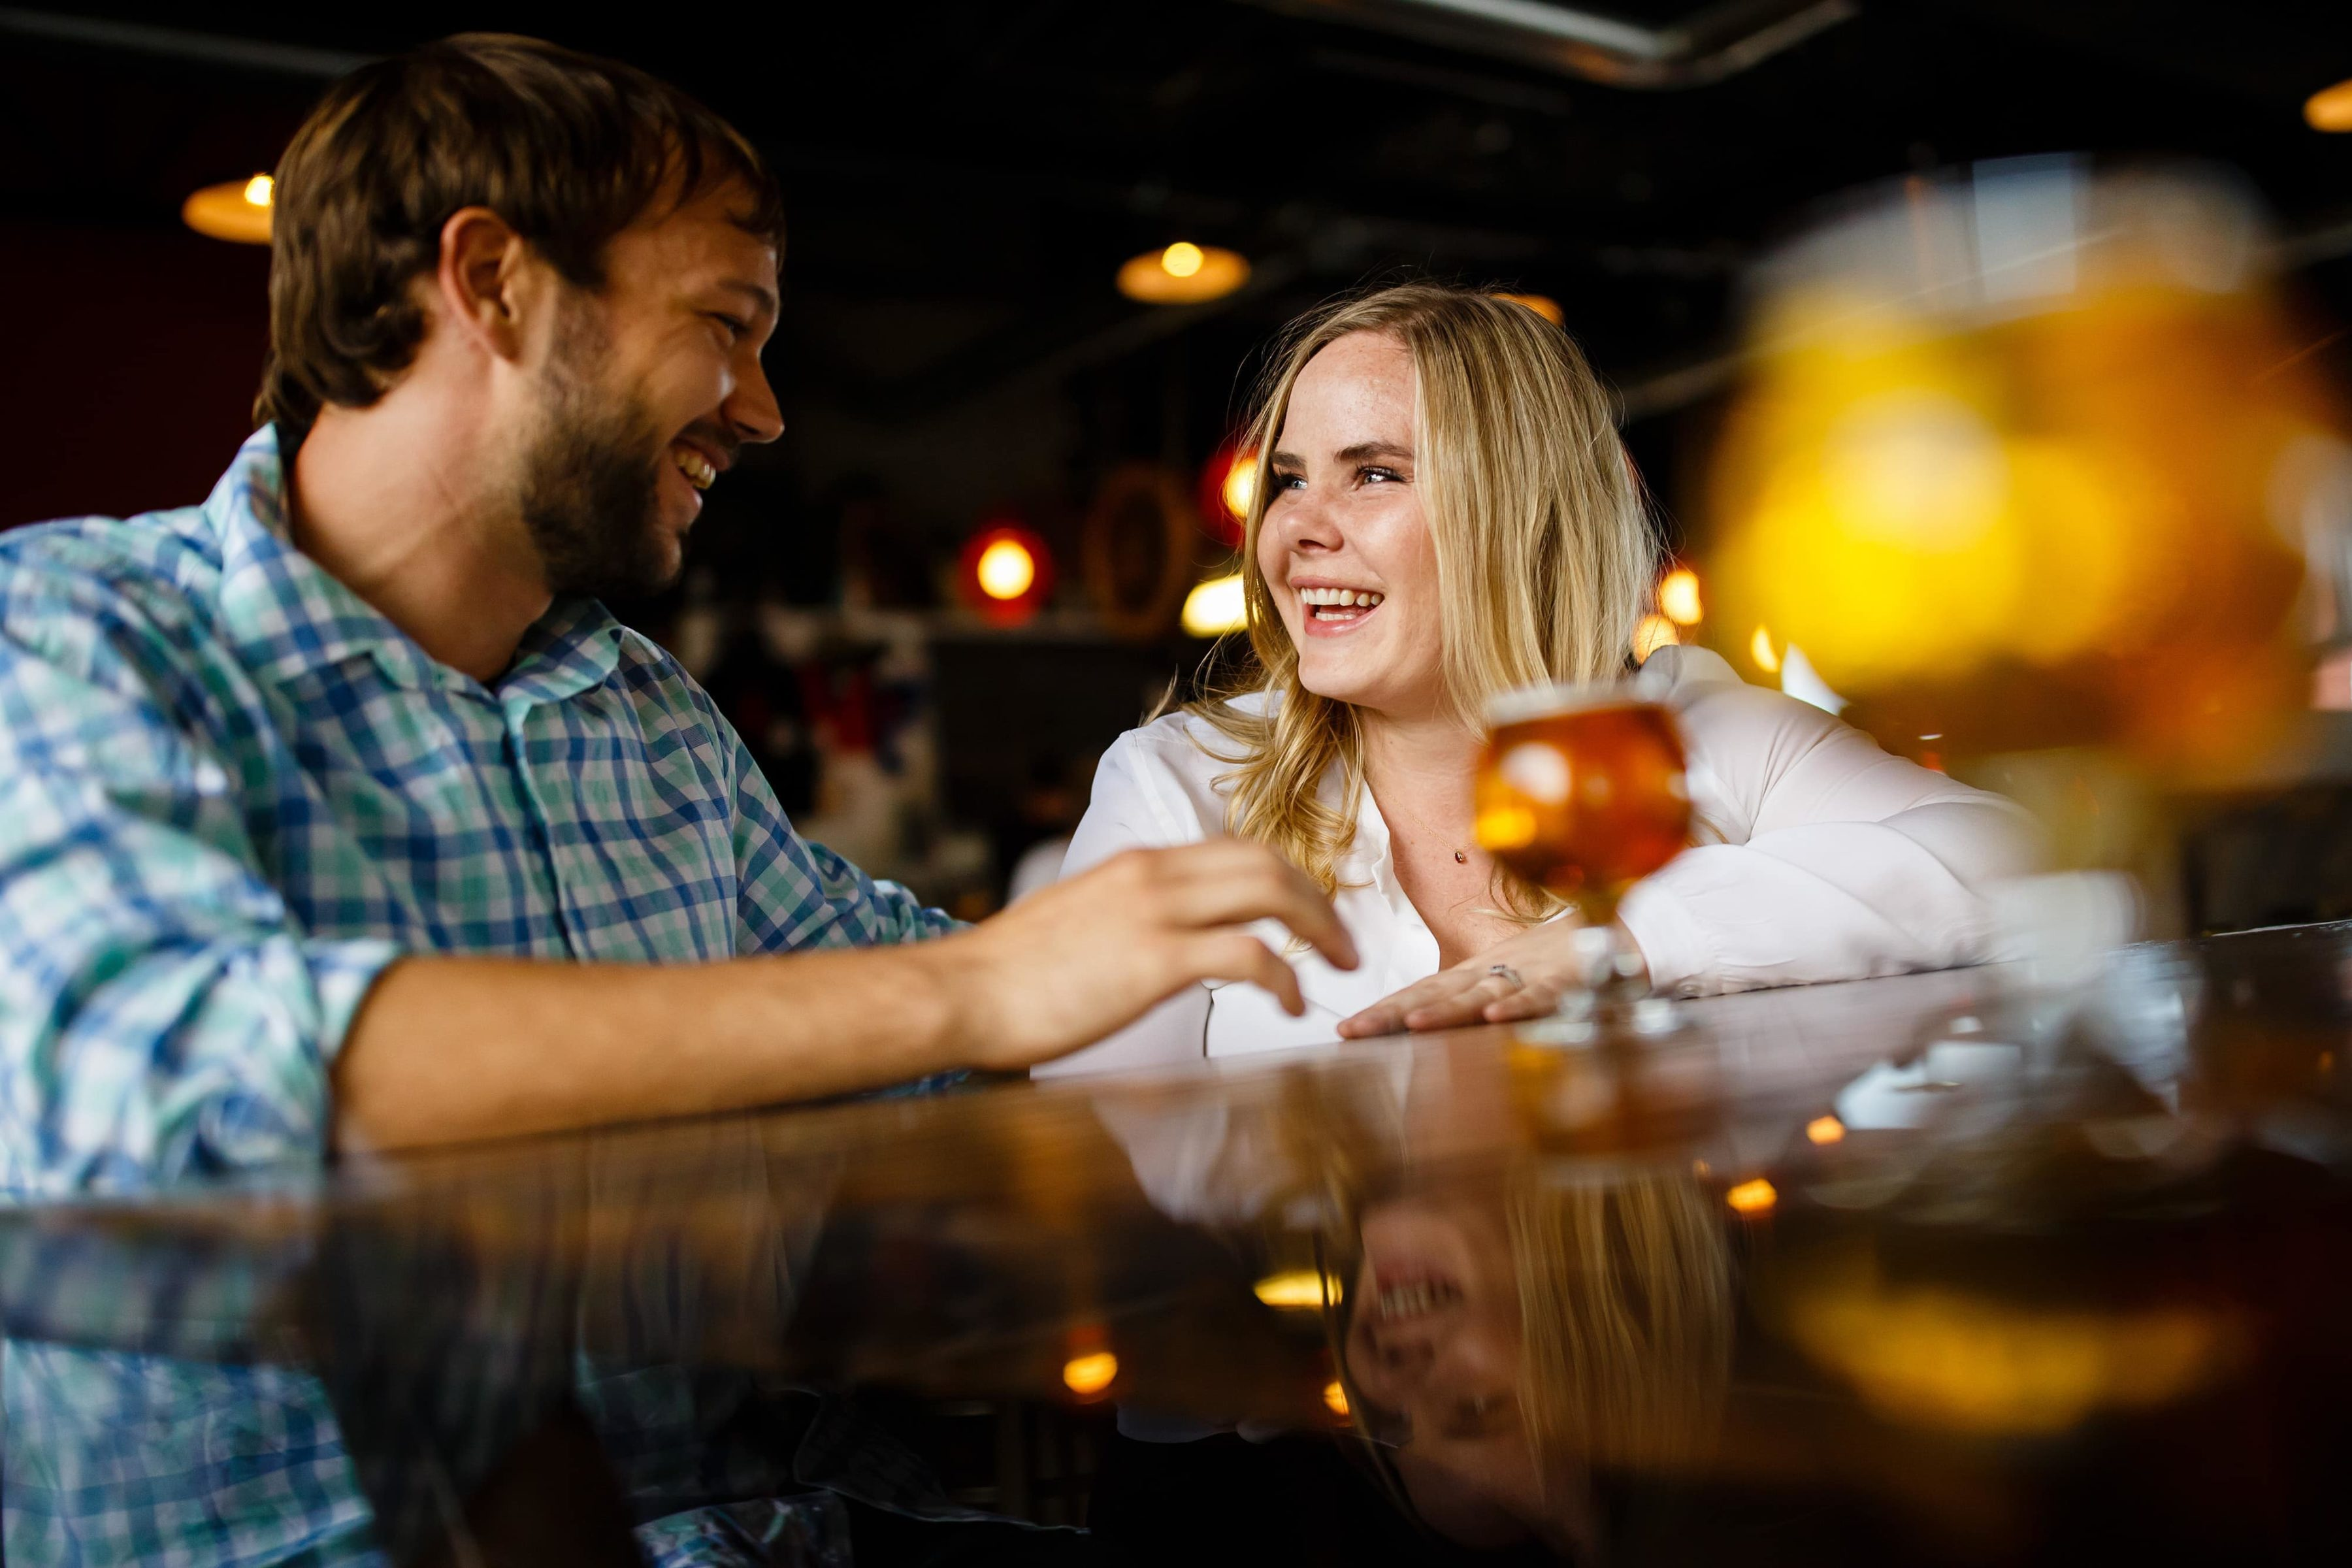 Coza and Joel engoy a beer at Cannonball Creek Brewing Company during their fall Golden engagement